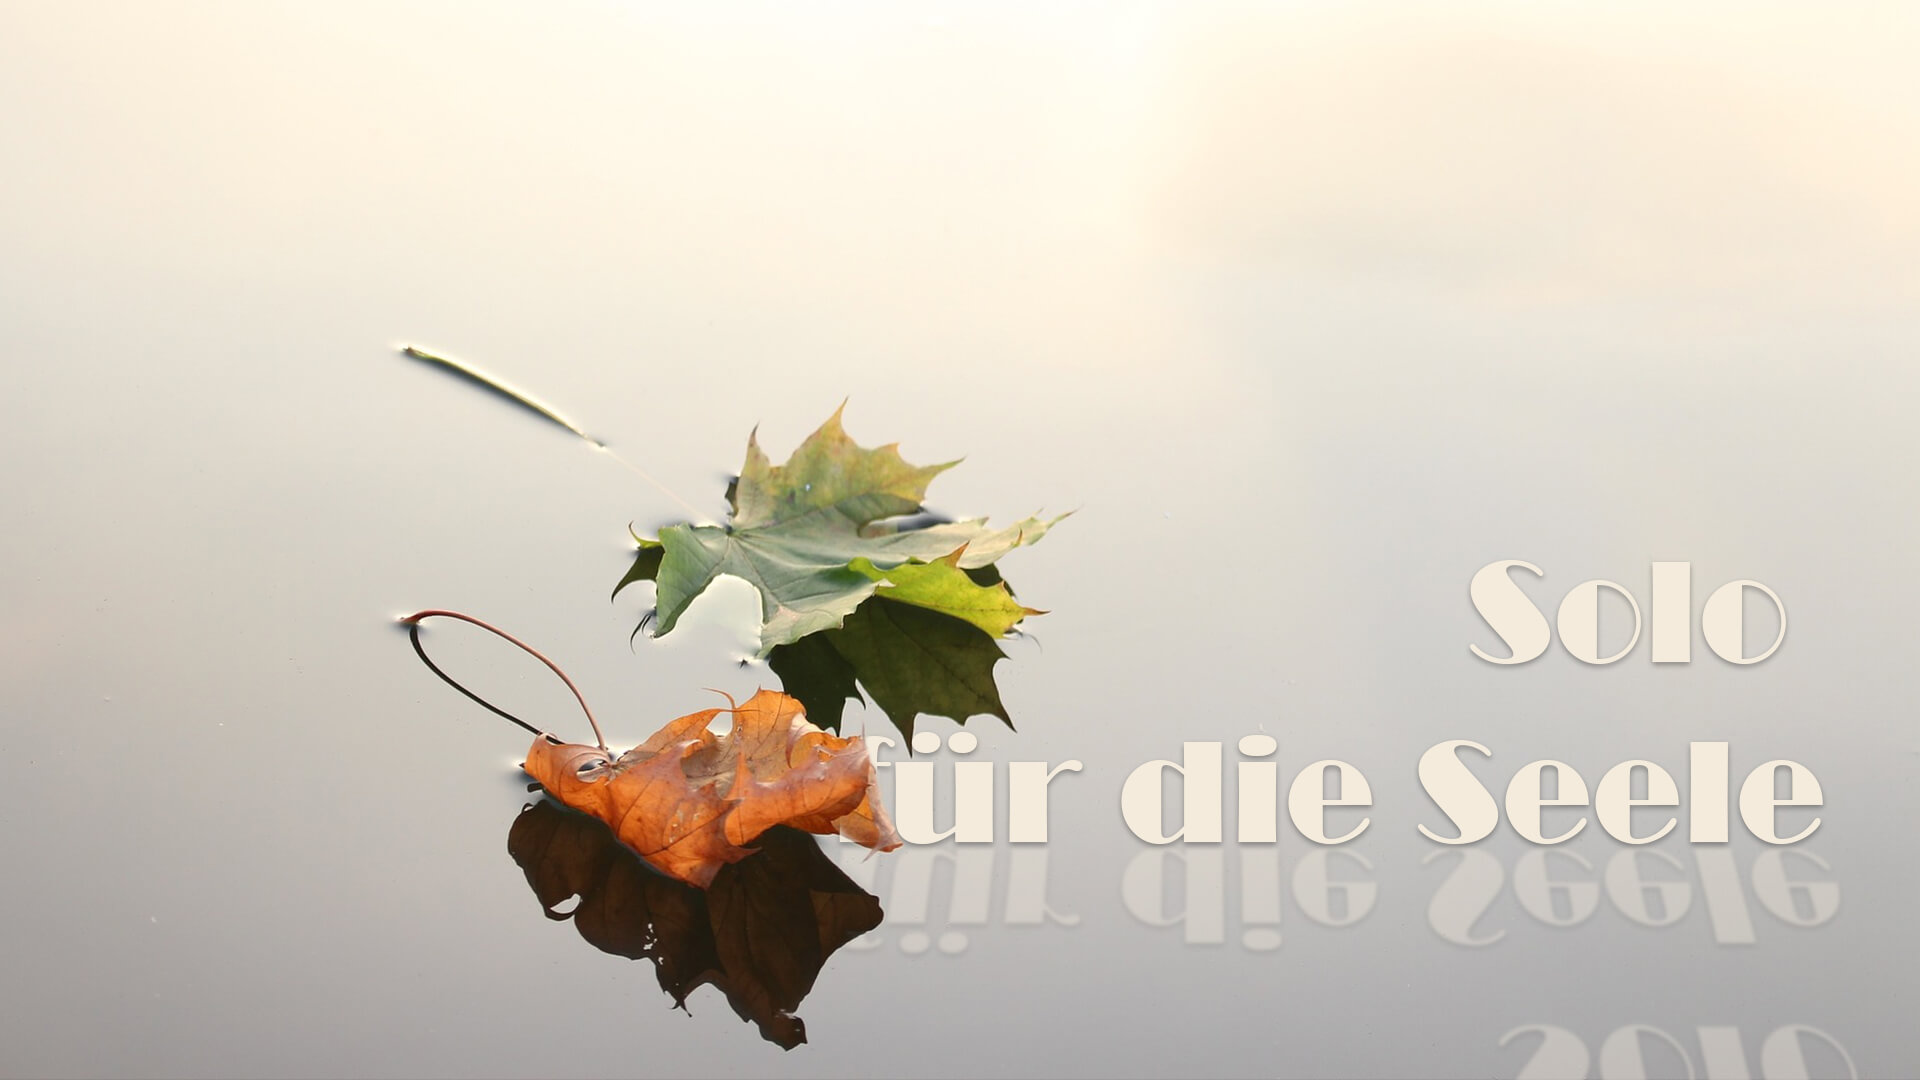 solo-fuer-die-seele